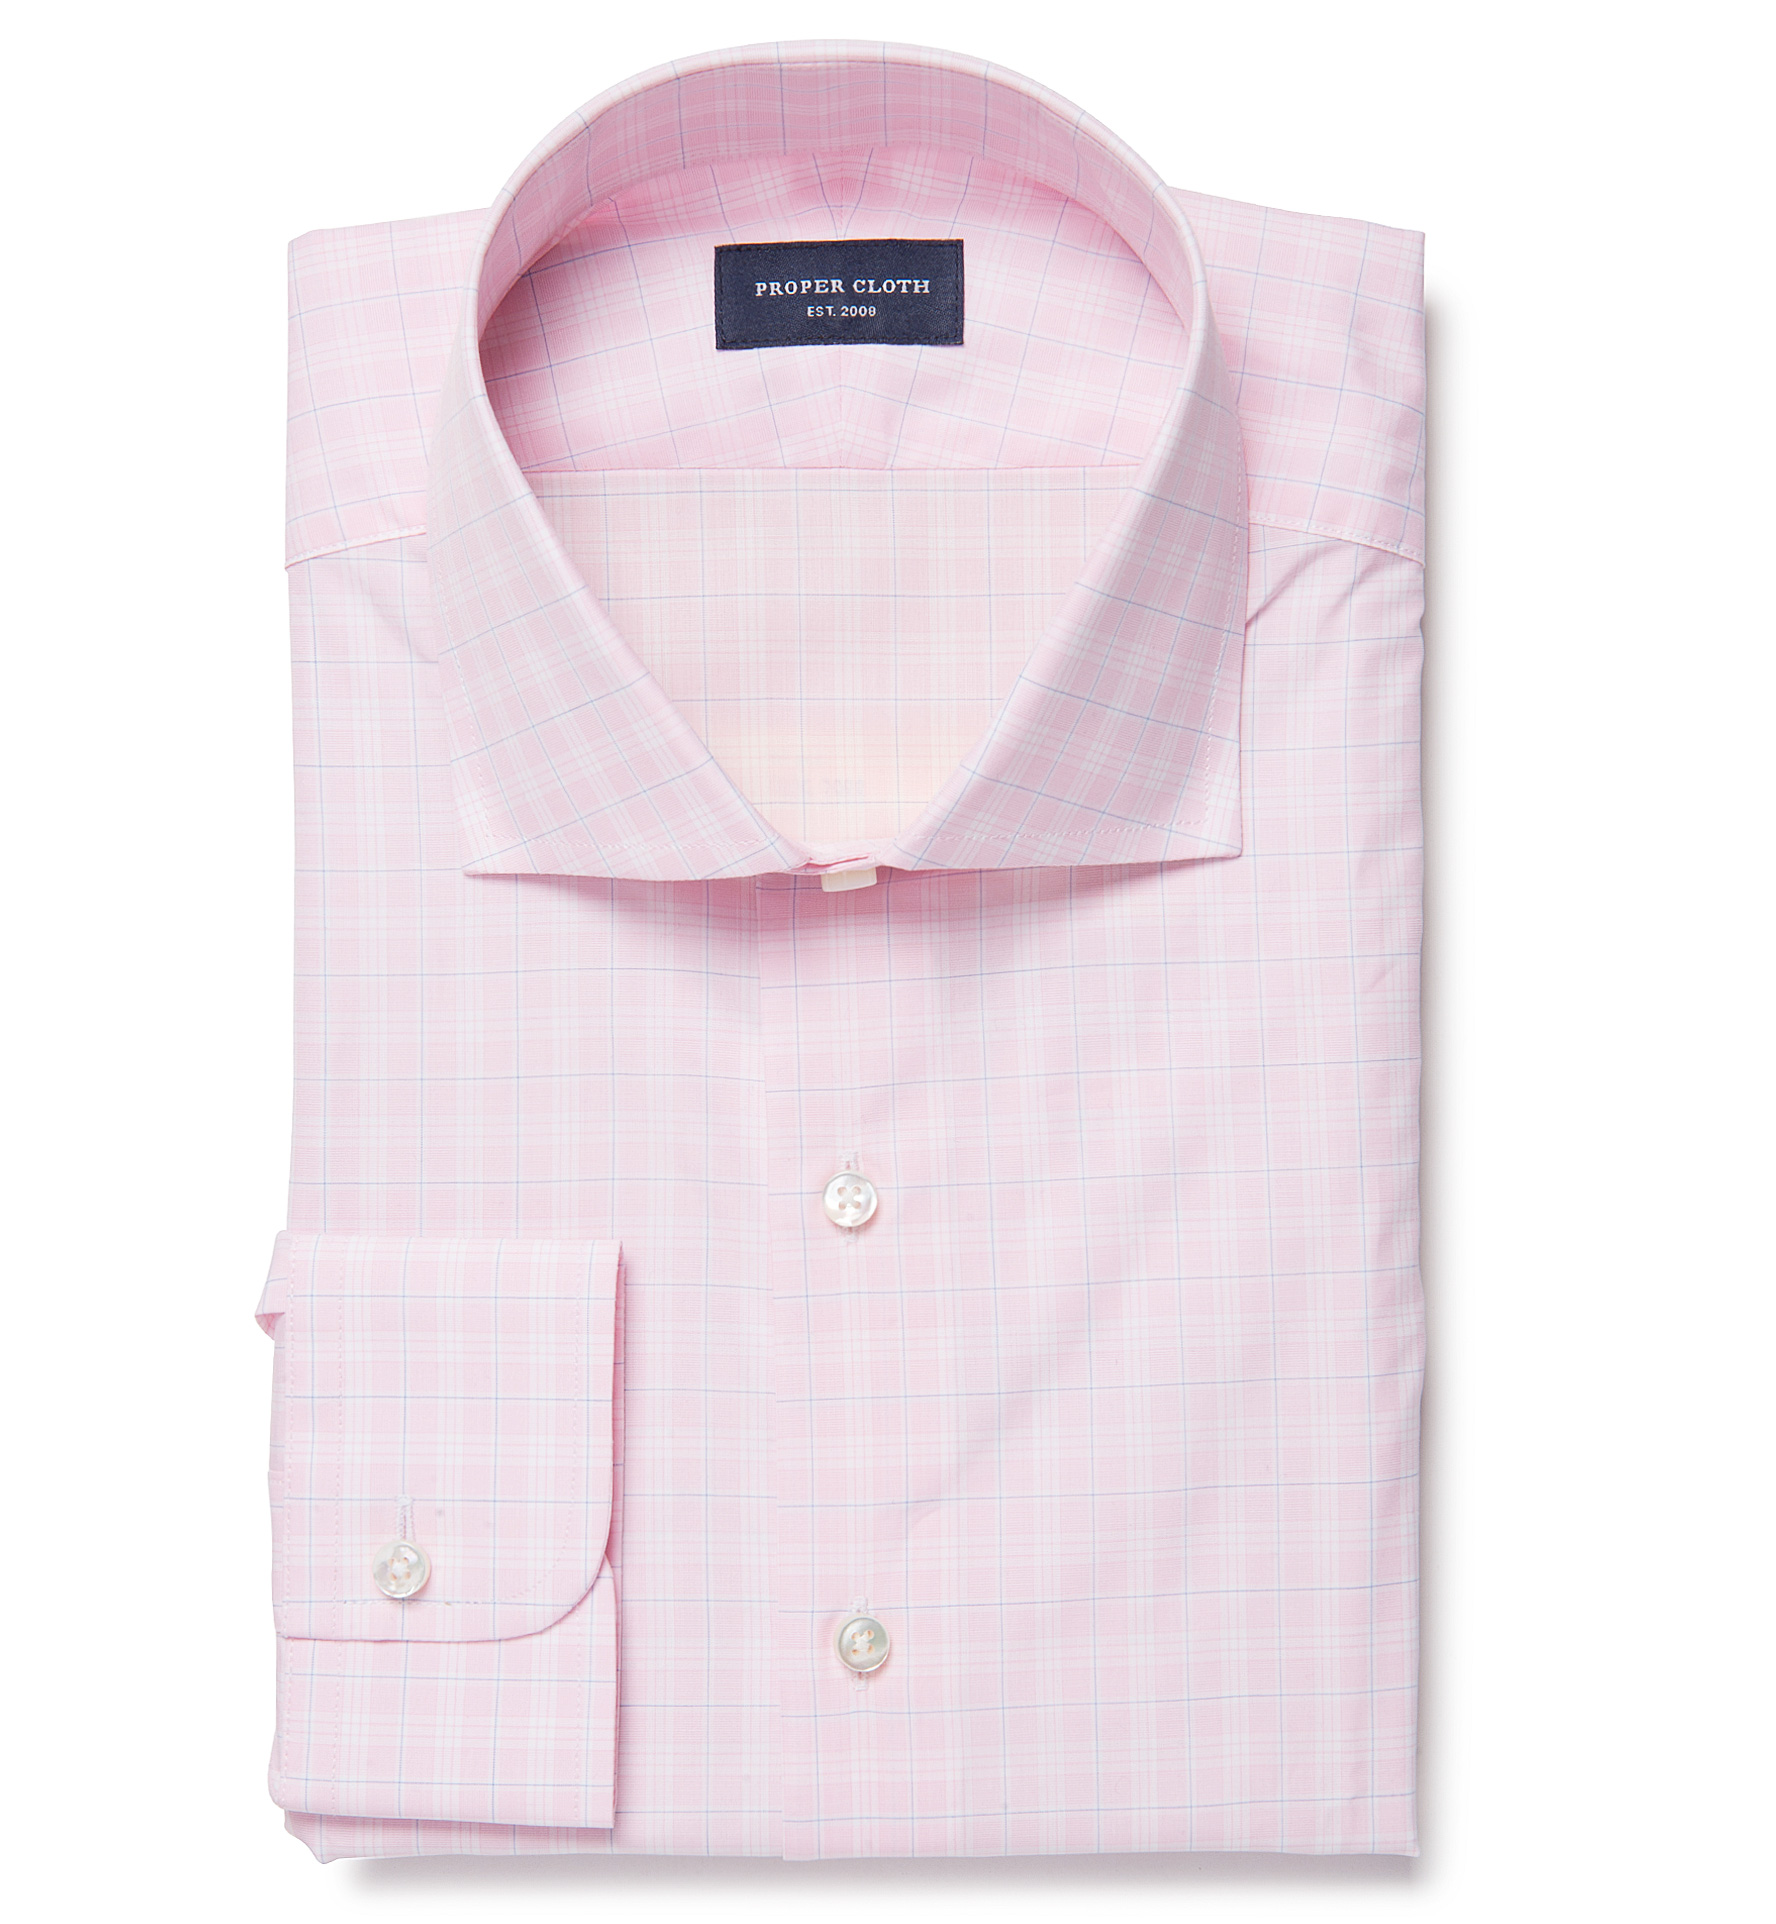 Thomas mason goldline pink prince of wales custom made for Proper cloth custom shirt price